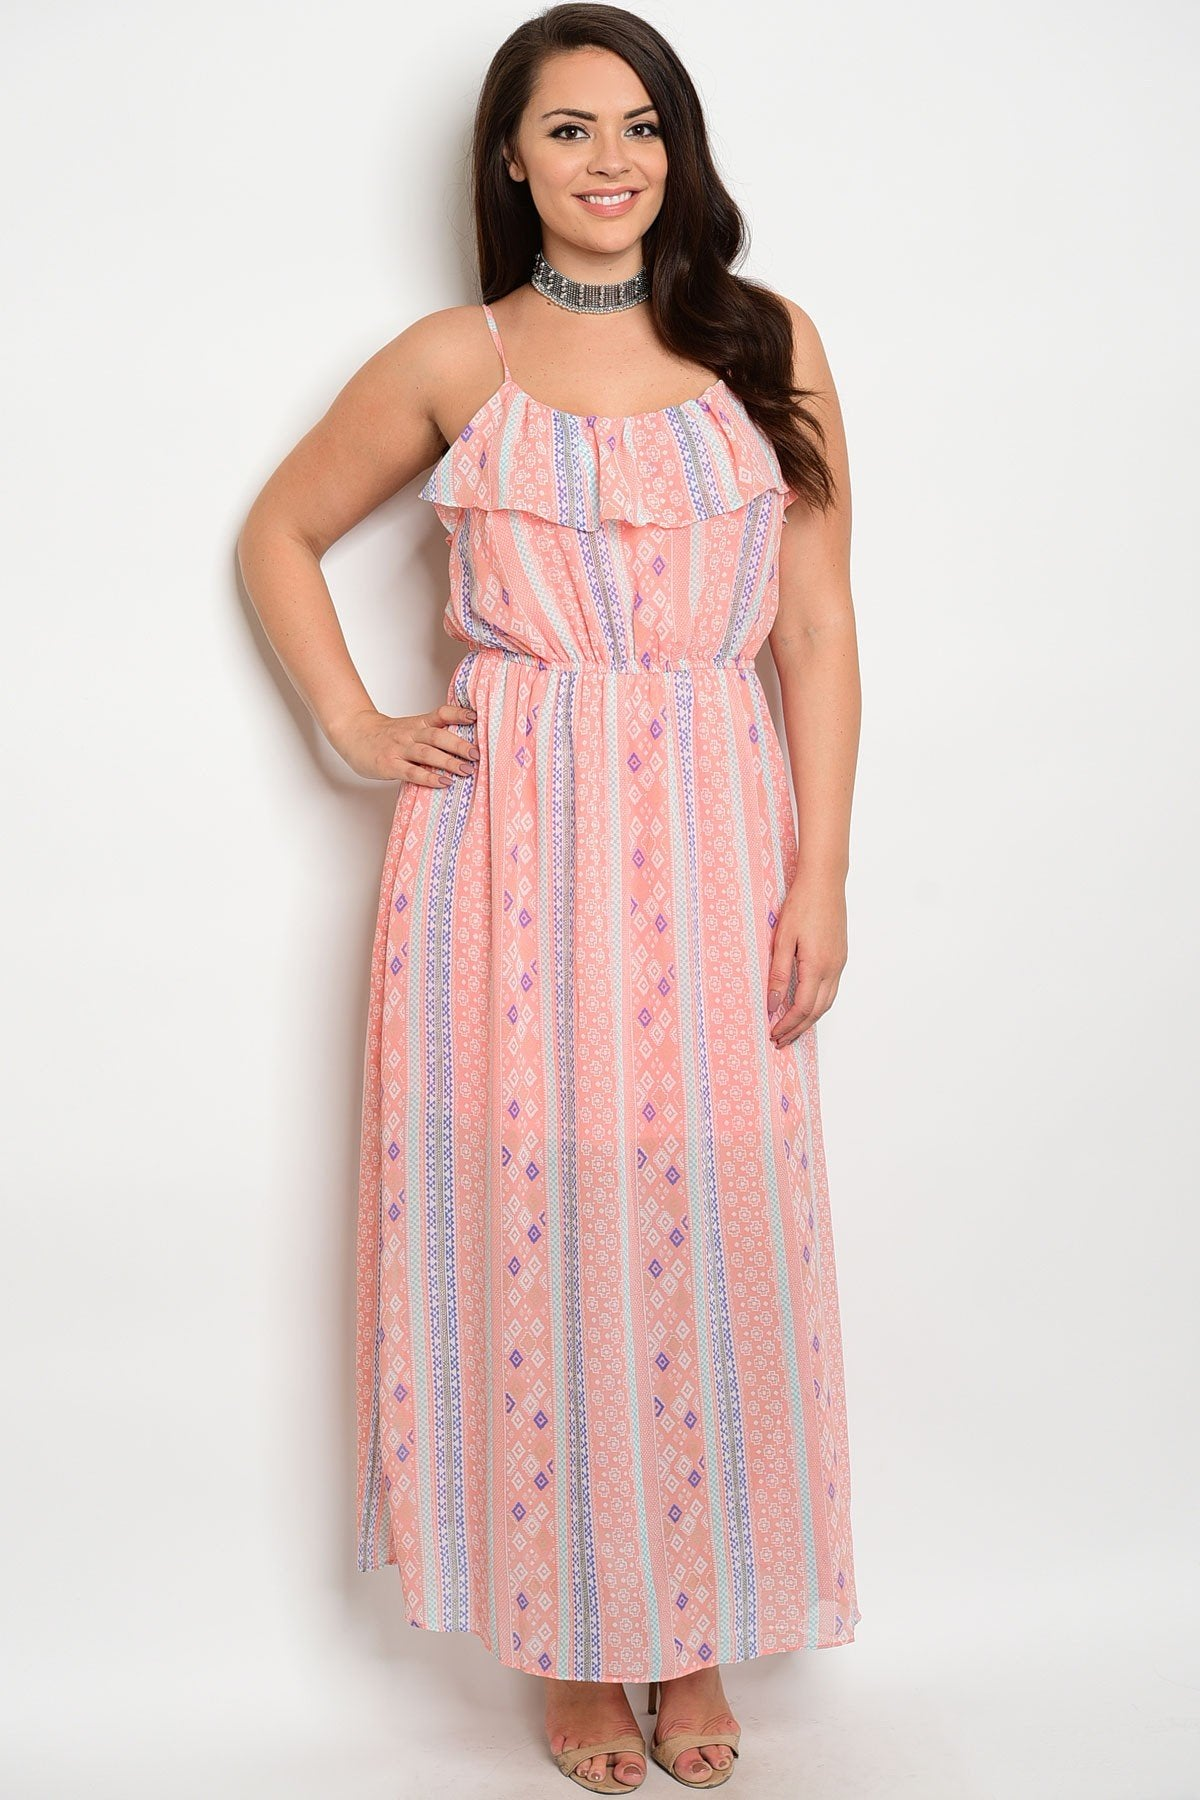 Henna Tribal Maxi Dress - Pink